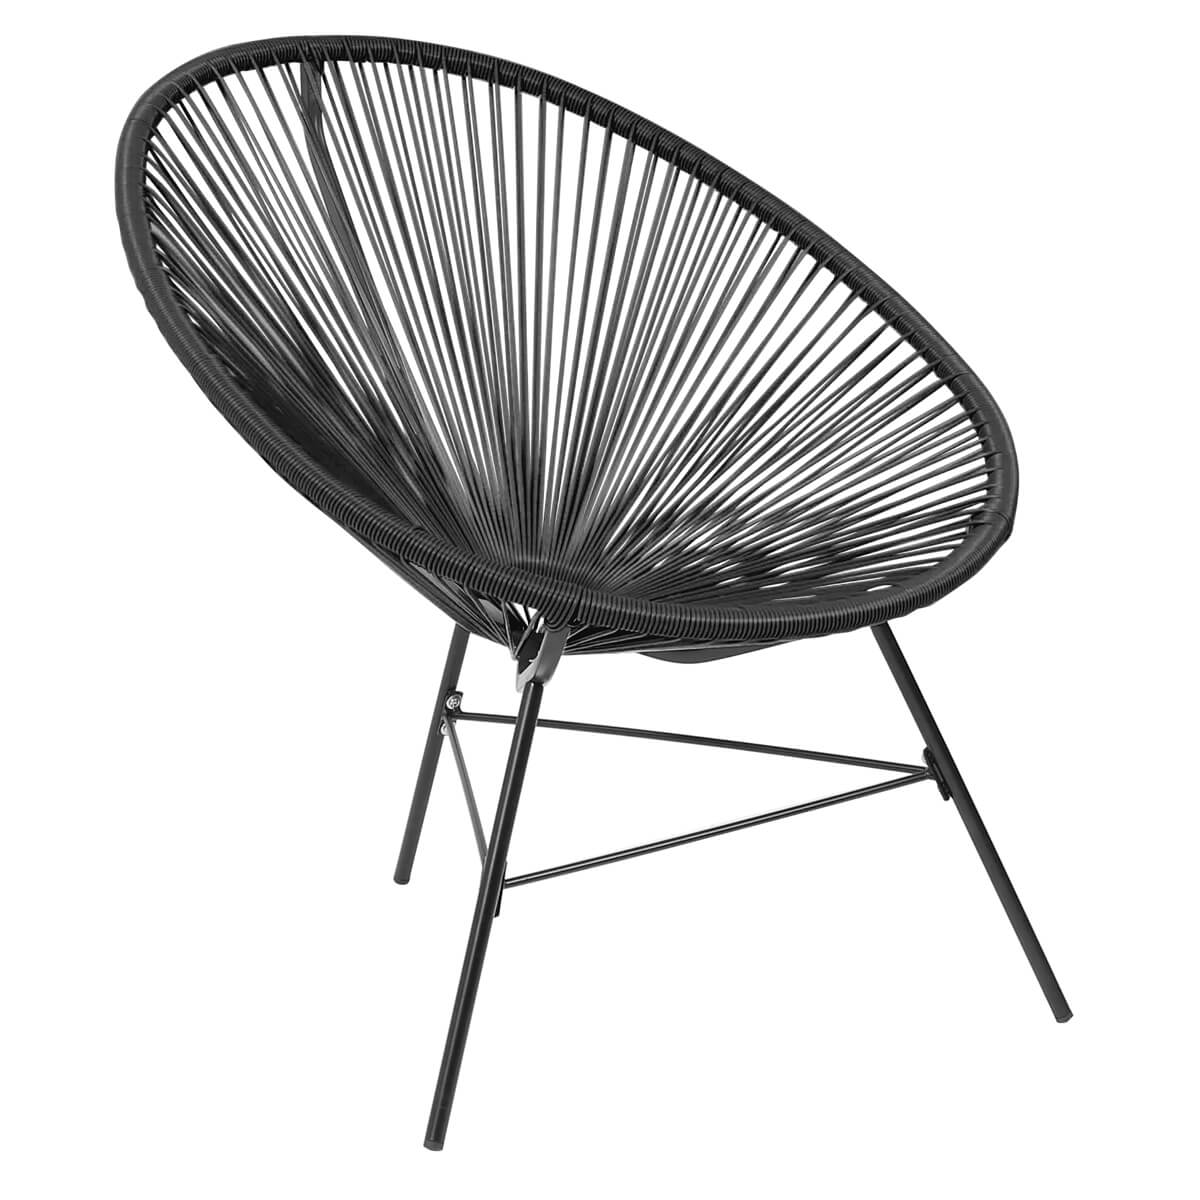 Lounge Sessel Retro Garden Furniture Retro Rattan Lounge Conservatory Chair Black